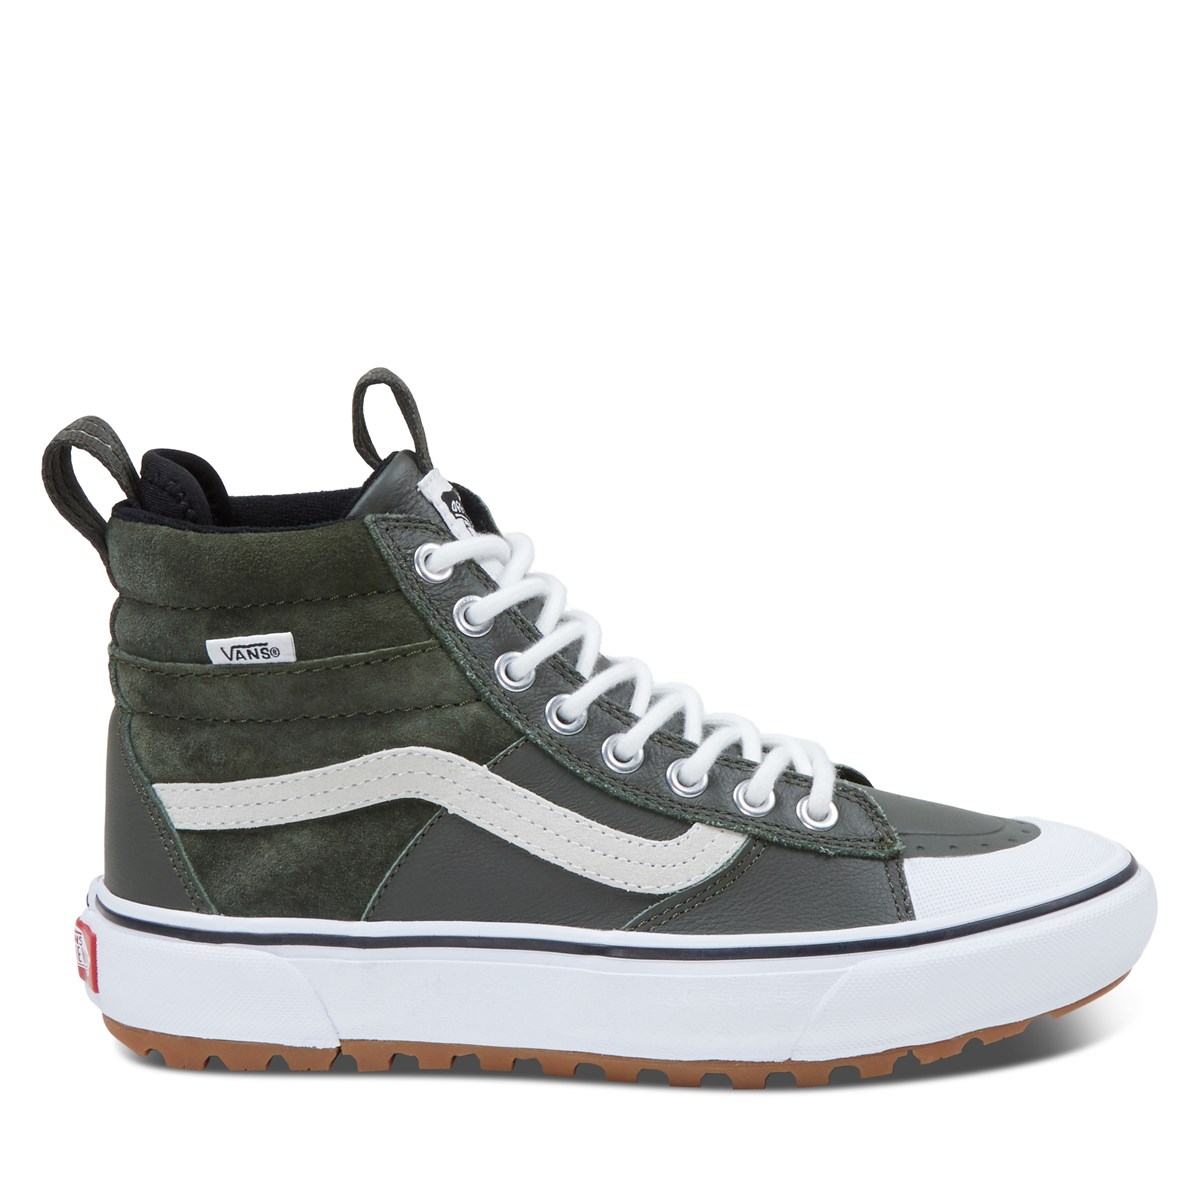 Women's Sk8-Hi MTE 2.0 DX Sneaker Boots in Green